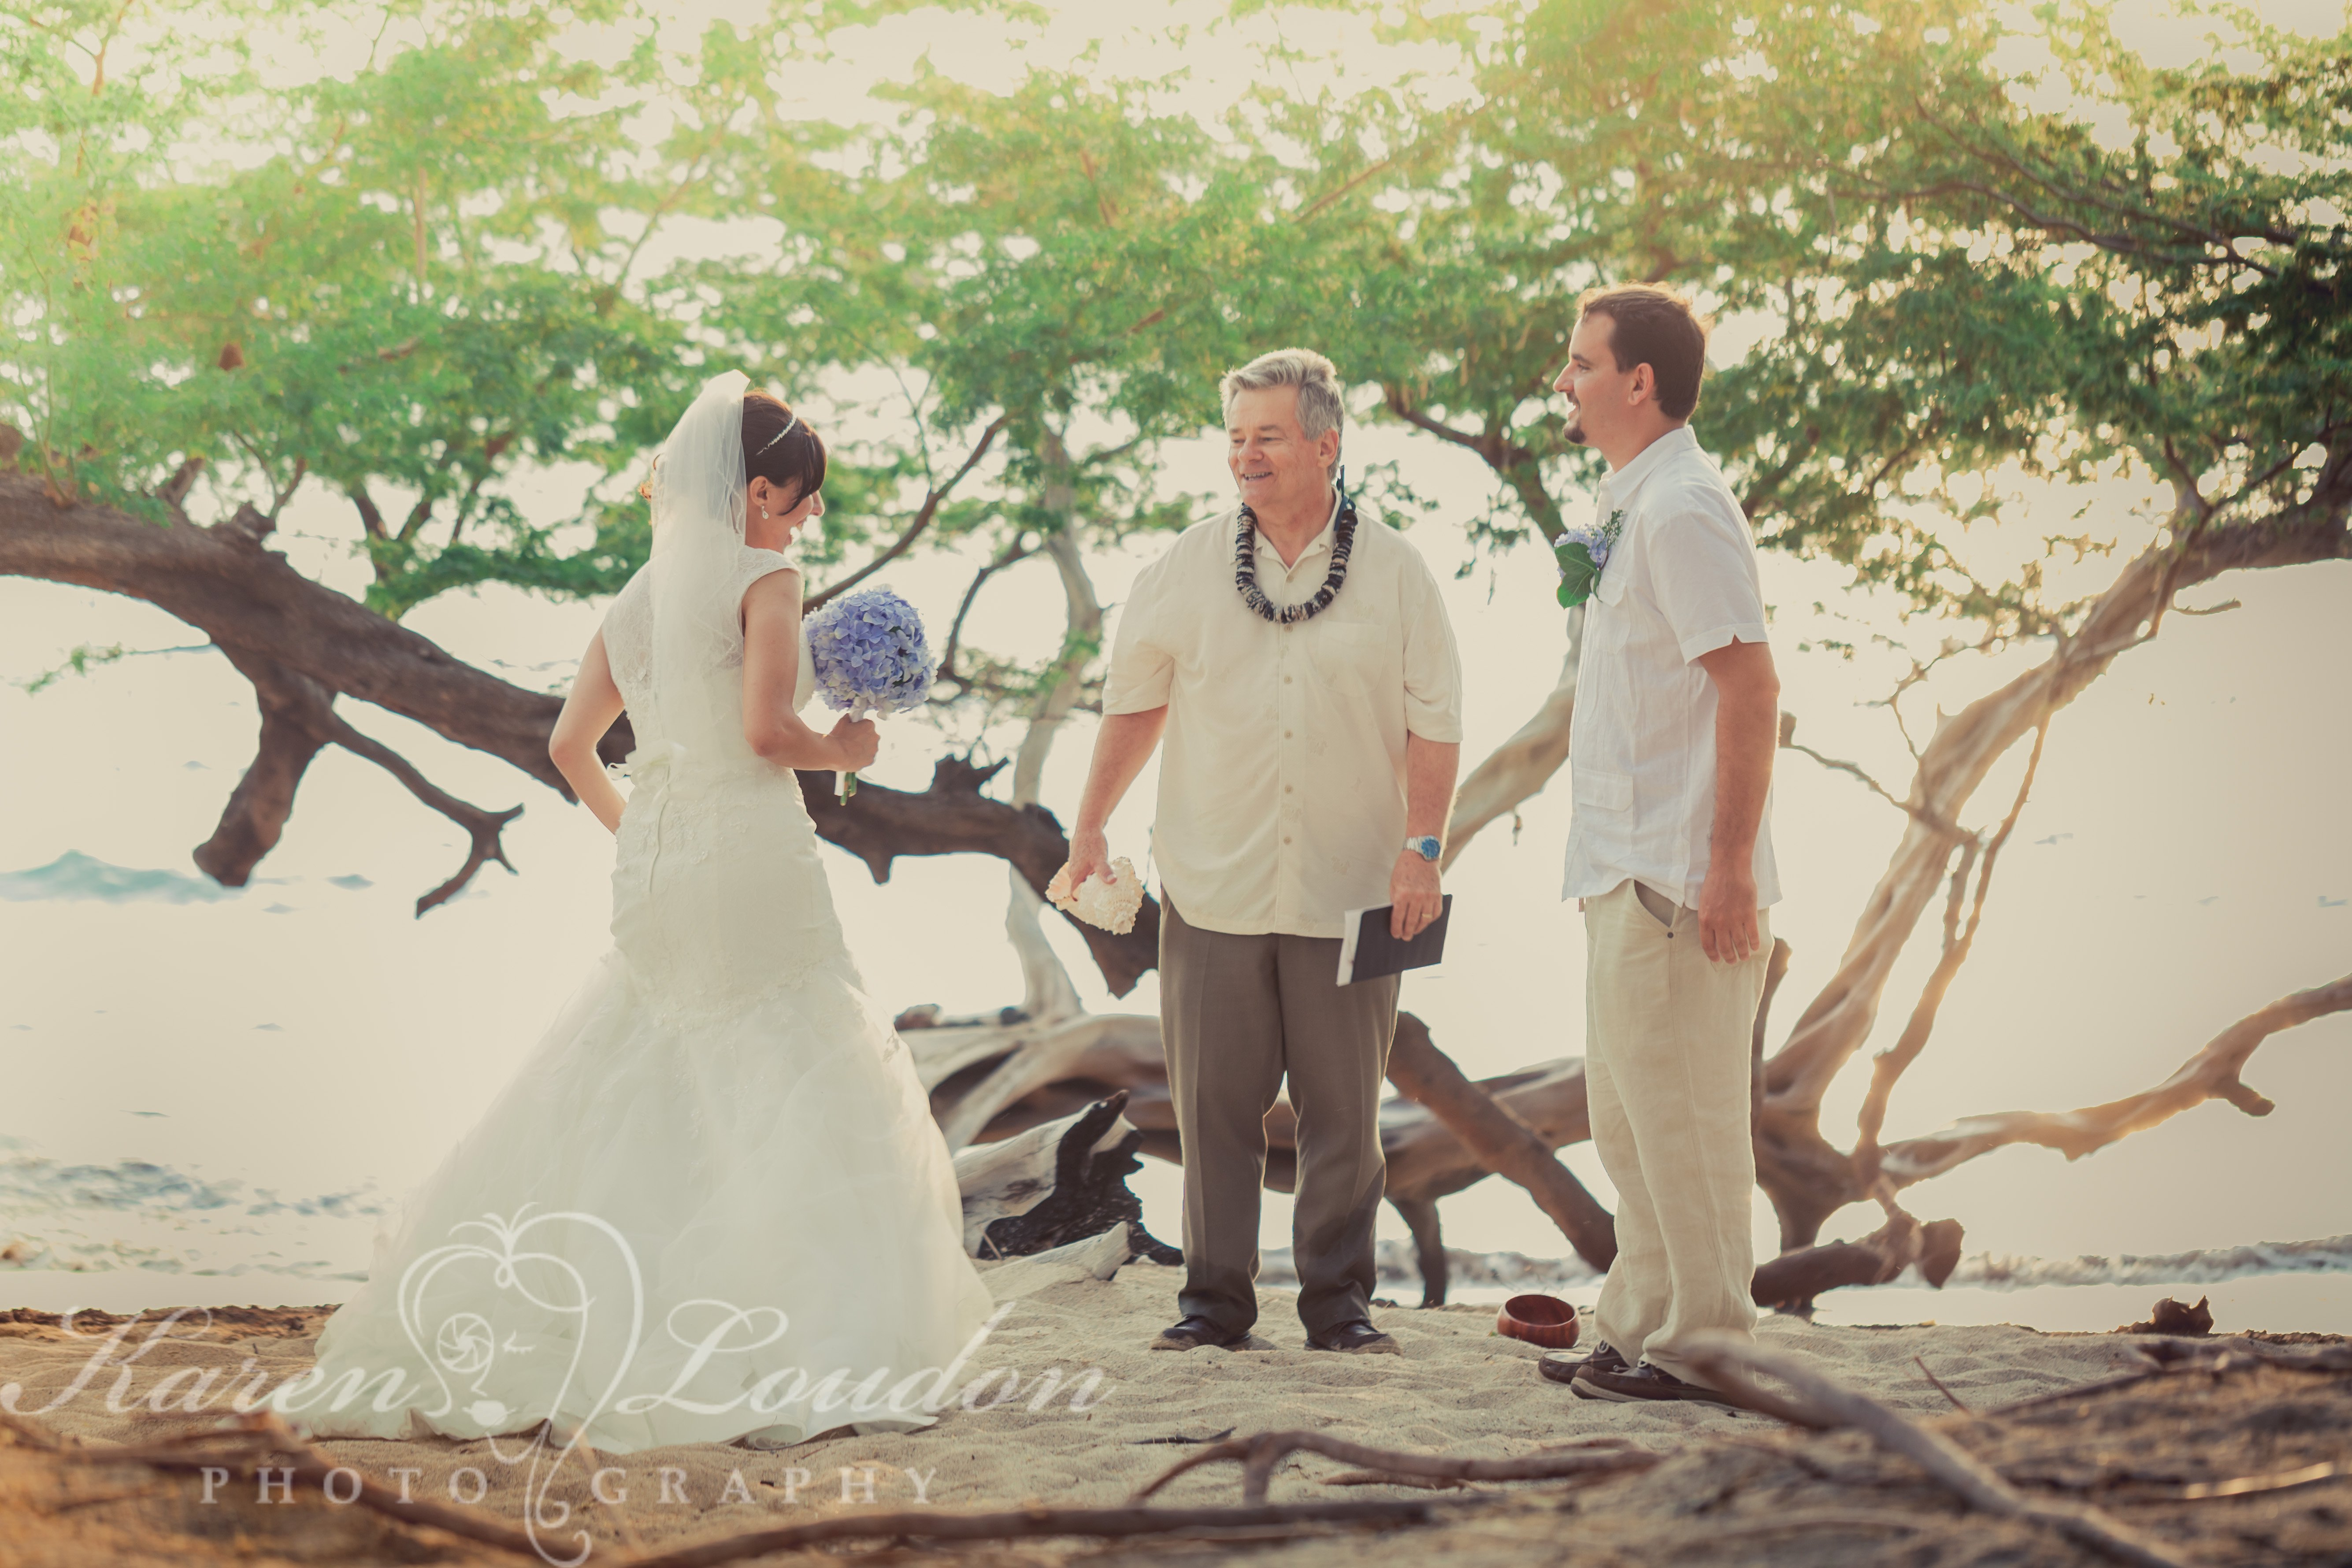 Waialea Wedding © Karen Loudon Photography